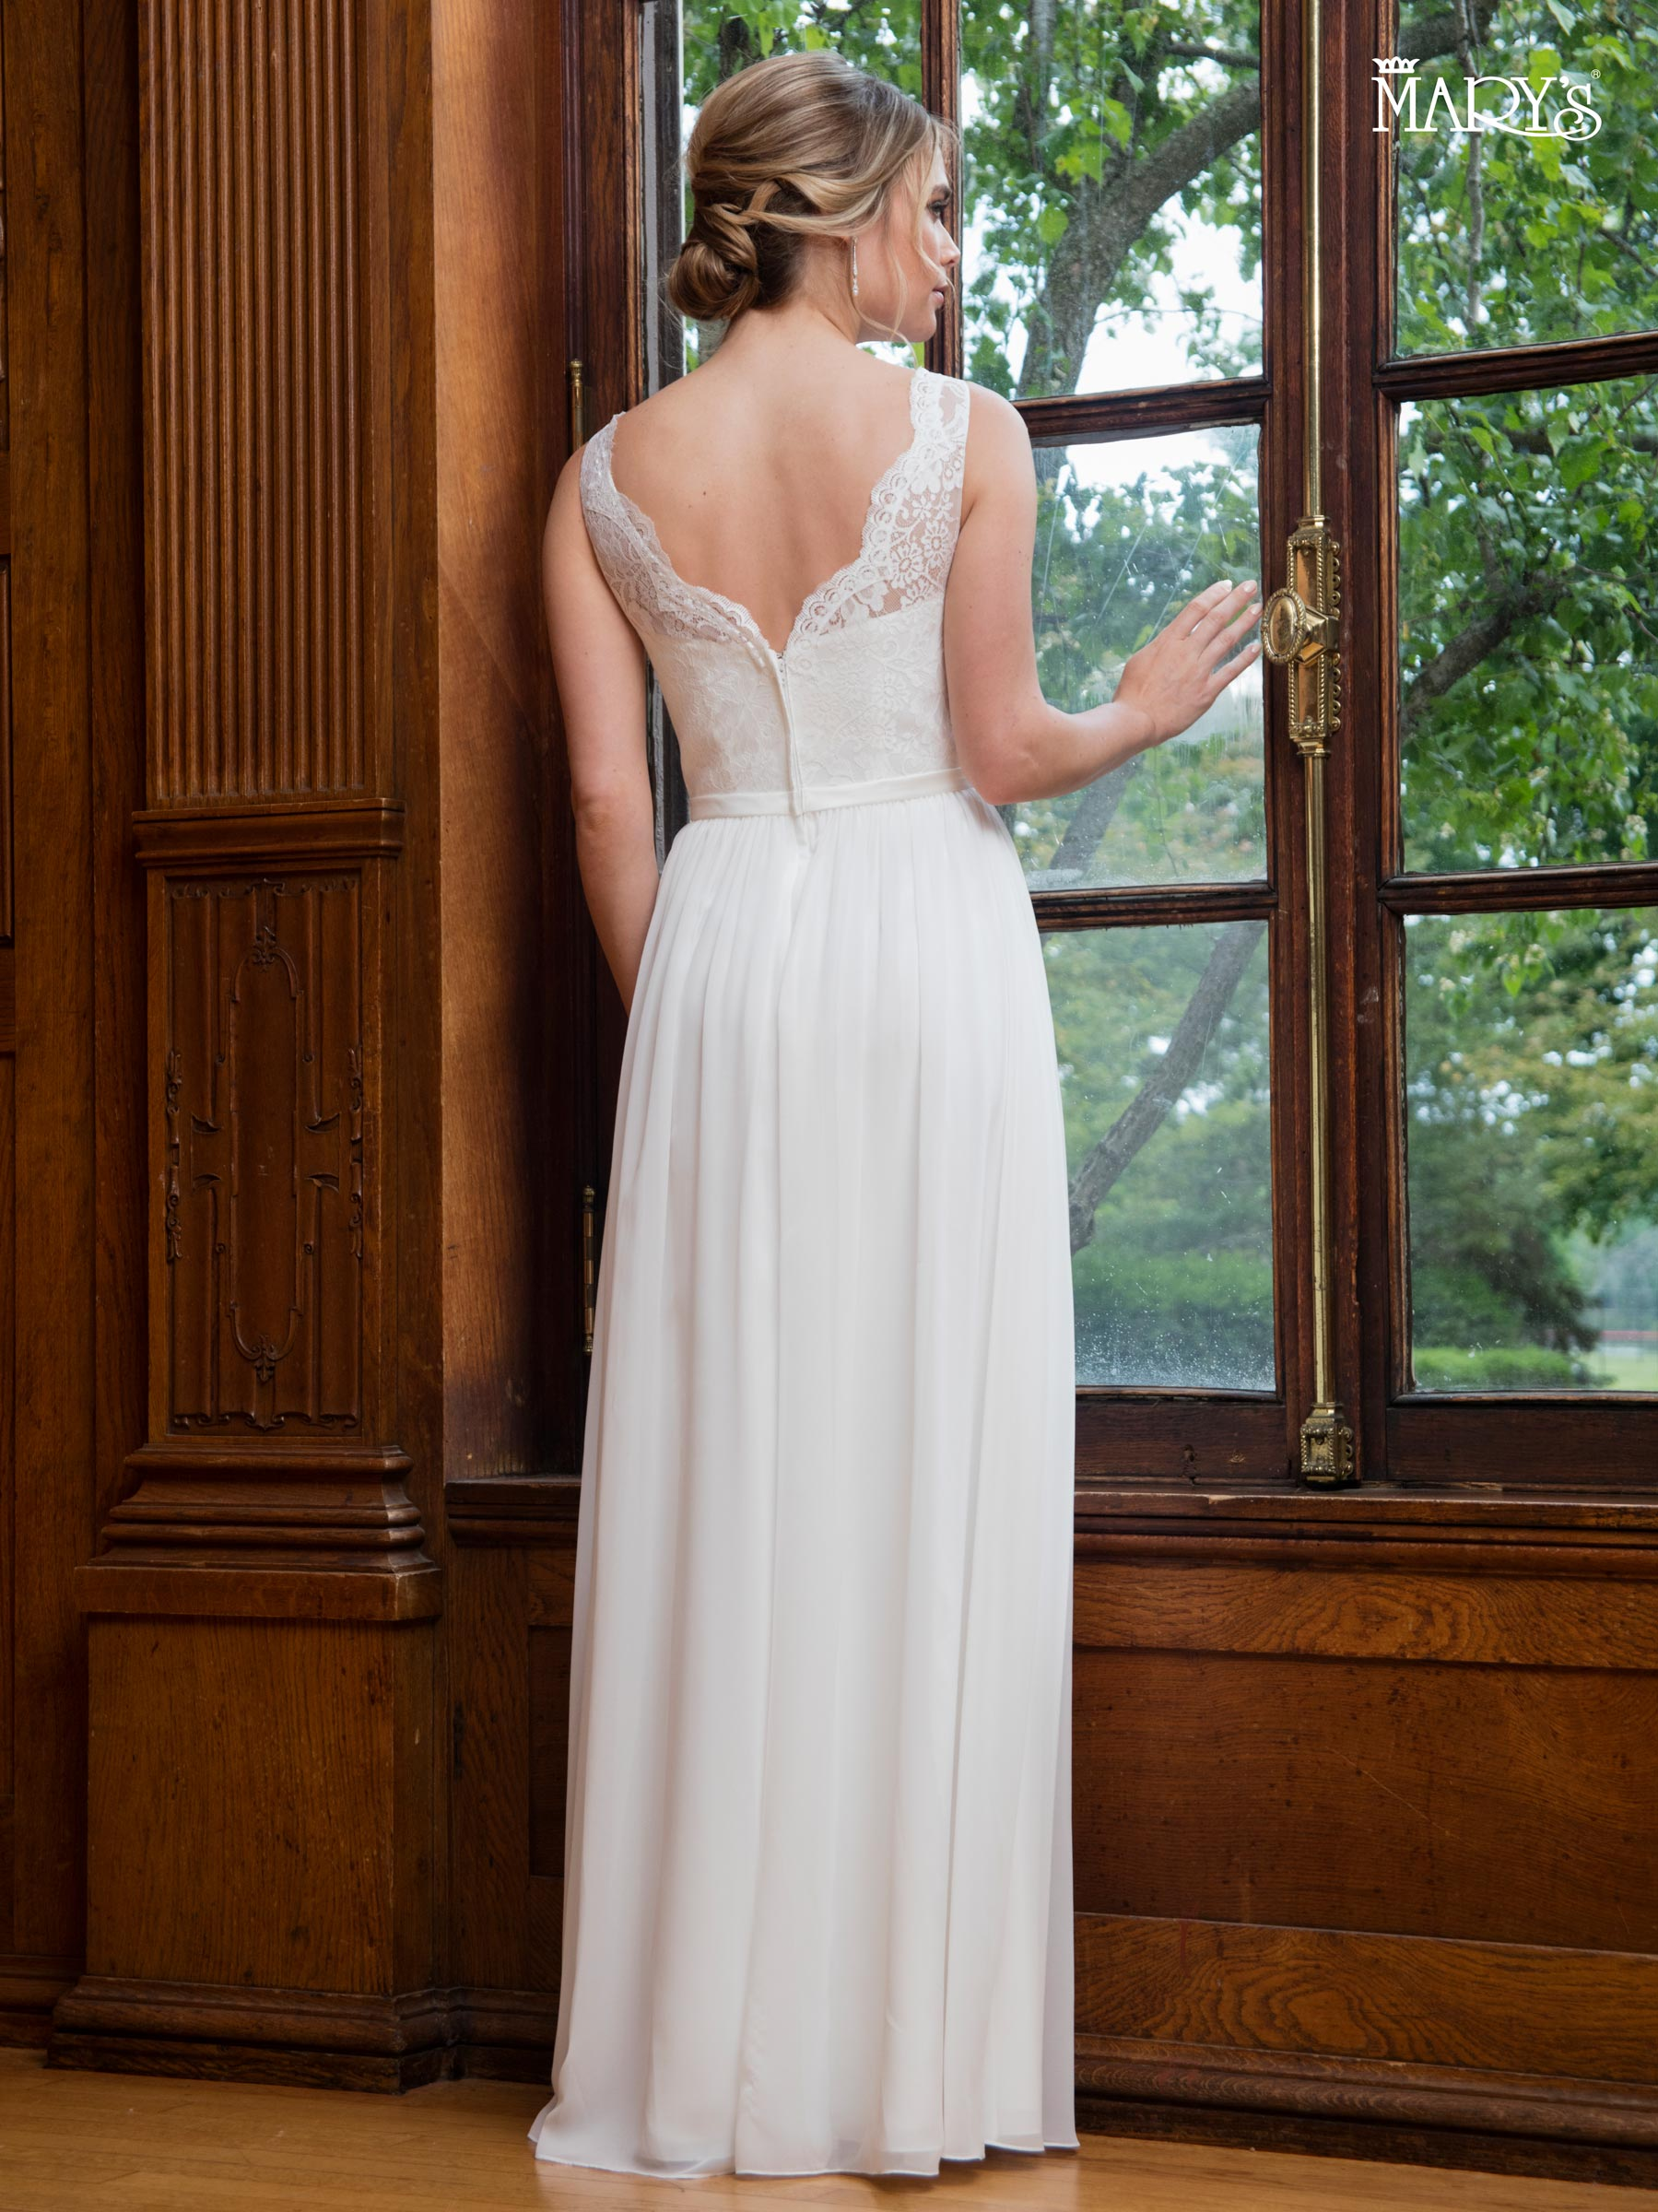 Bridal Wedding Dresses | Mary's | Style - MB1010